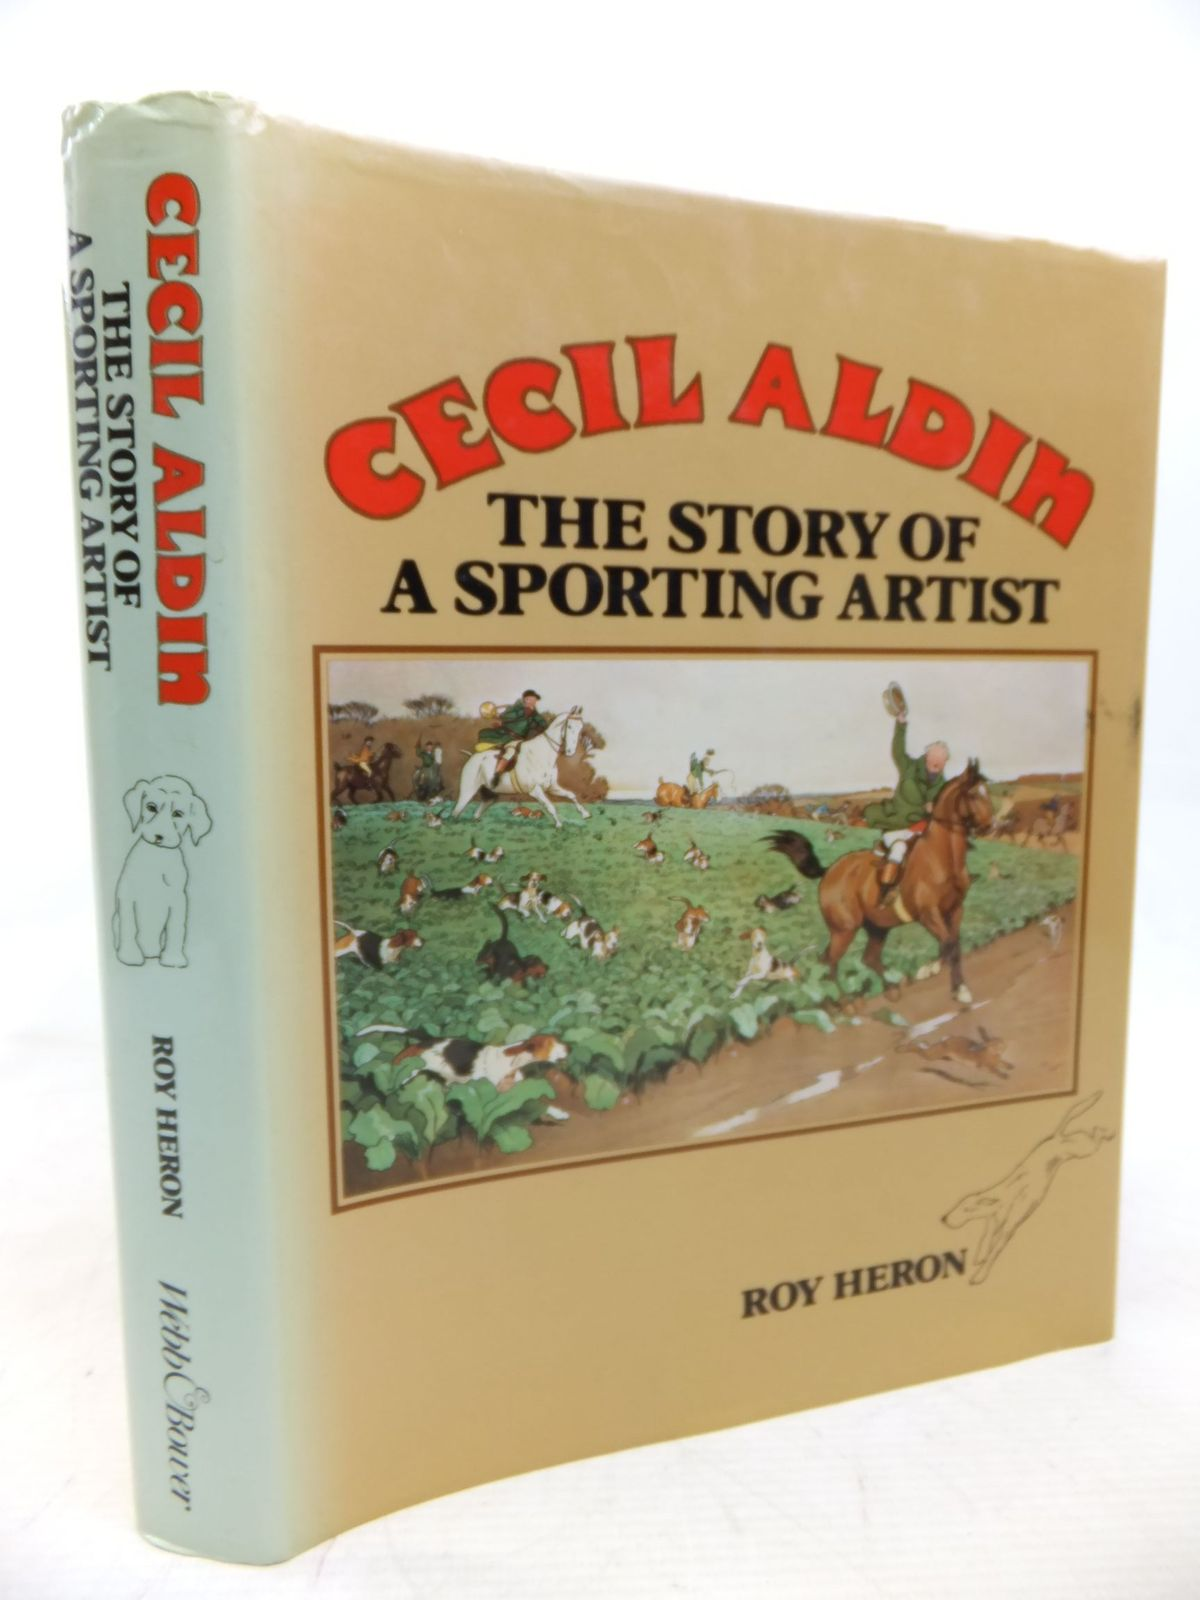 Photo of CECIL ALDIN - THE STORY OF A SPORTING ARTIST